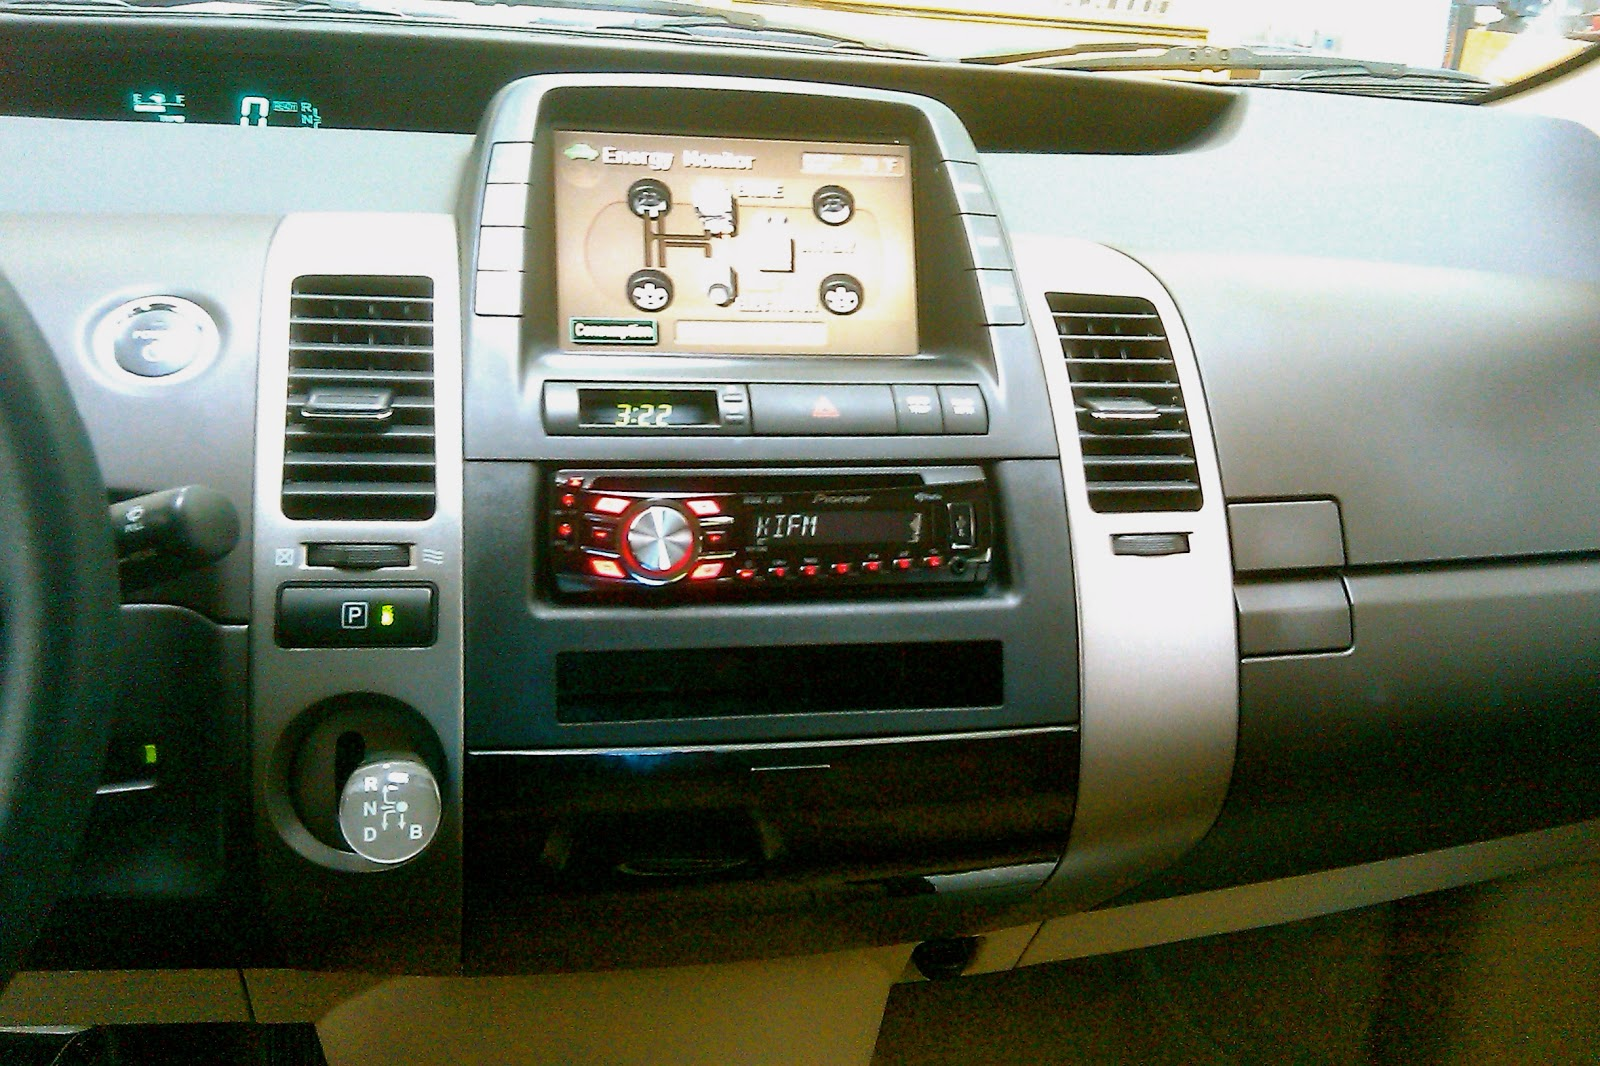 Toyota Prius Car Stereo Wiring Diagram Trusted Diagrams 2010 Antenna 04 Avalon Aftermarket Radio Explore Schematic U2022 Camry